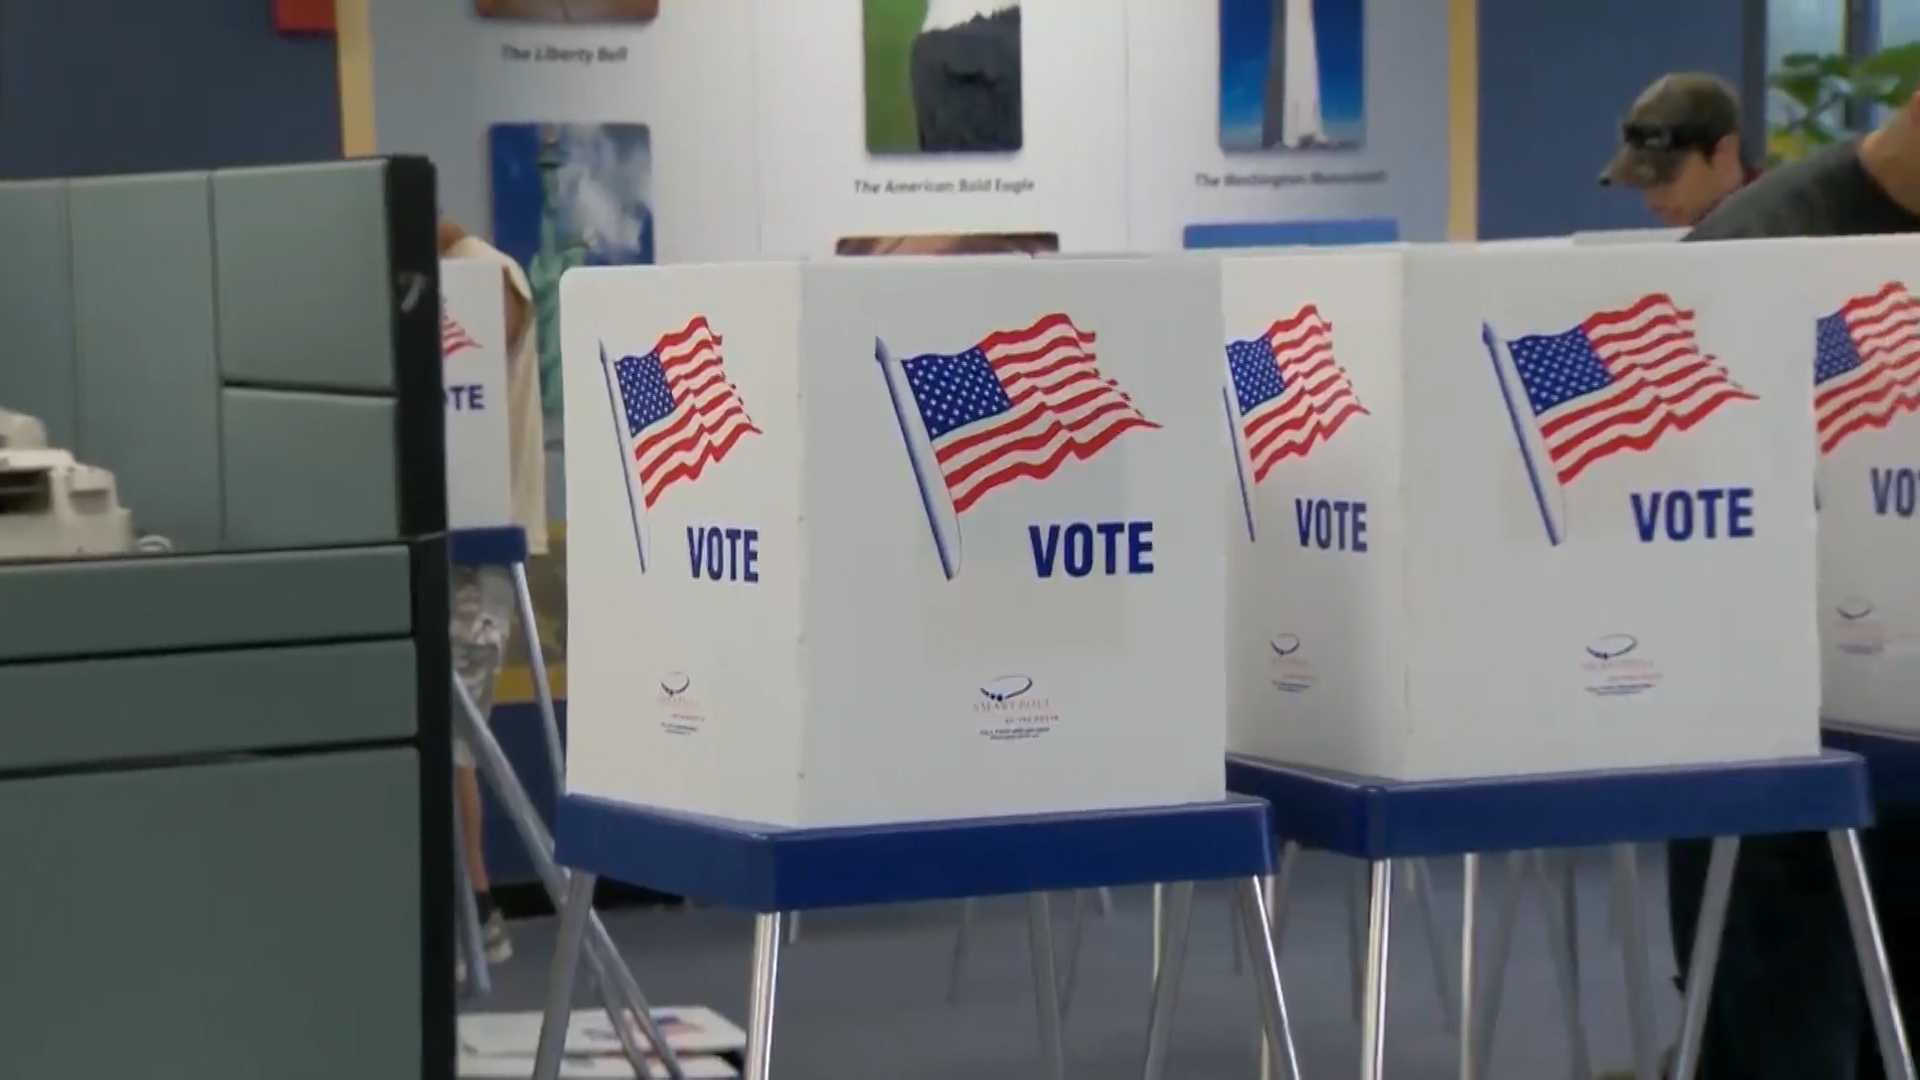 Initiative that would restore felons' voting rights qualifies for 2018 ballot